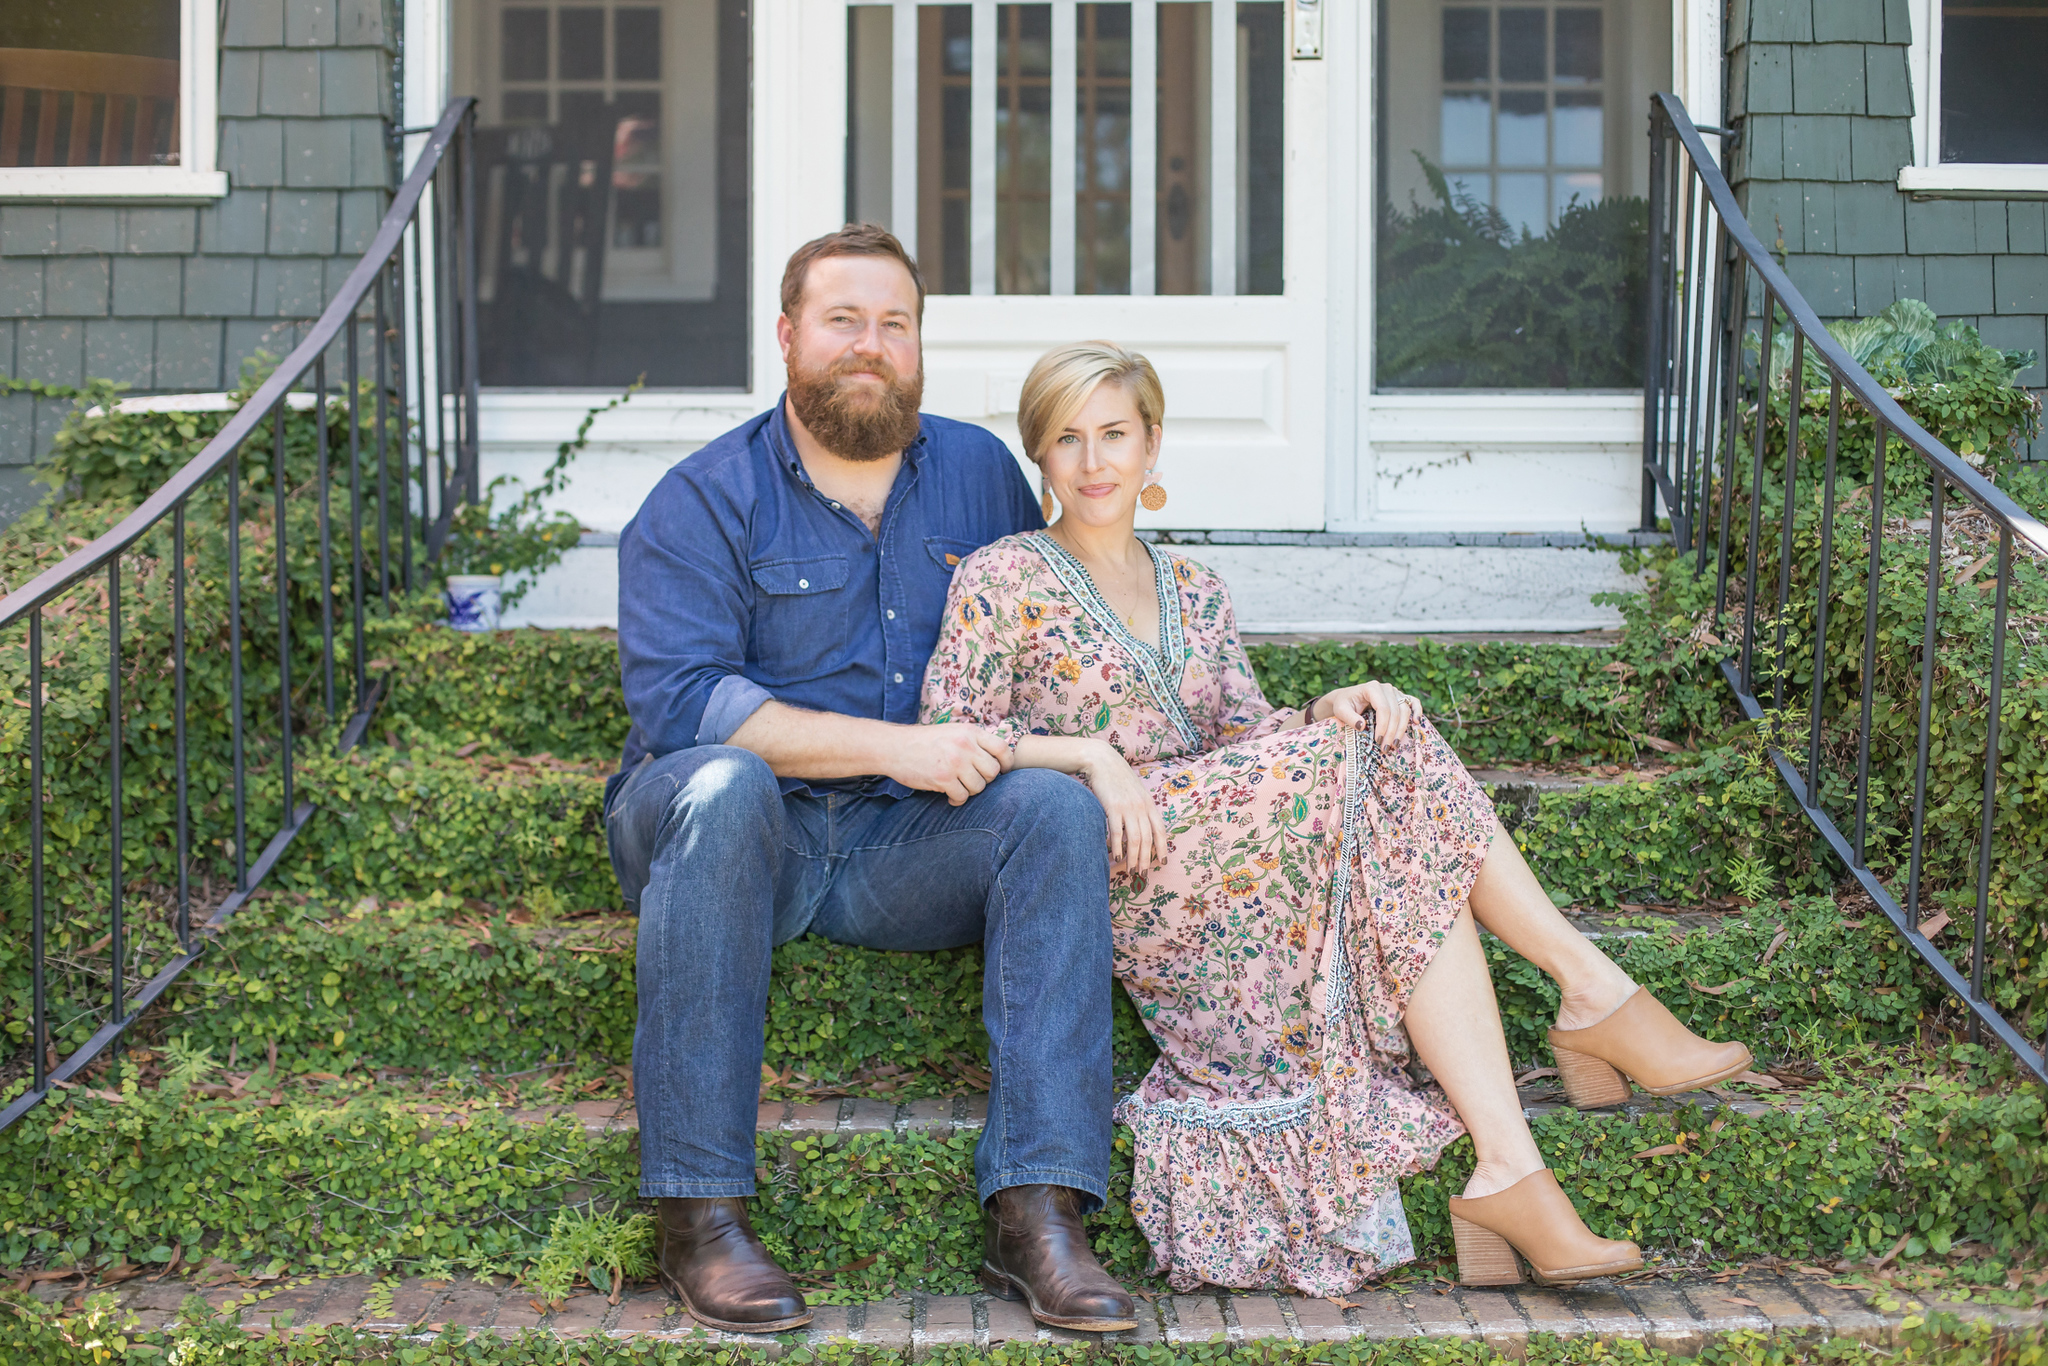 Erin And Ben Napier Named Stars of Hope for Crystal Ball 2022